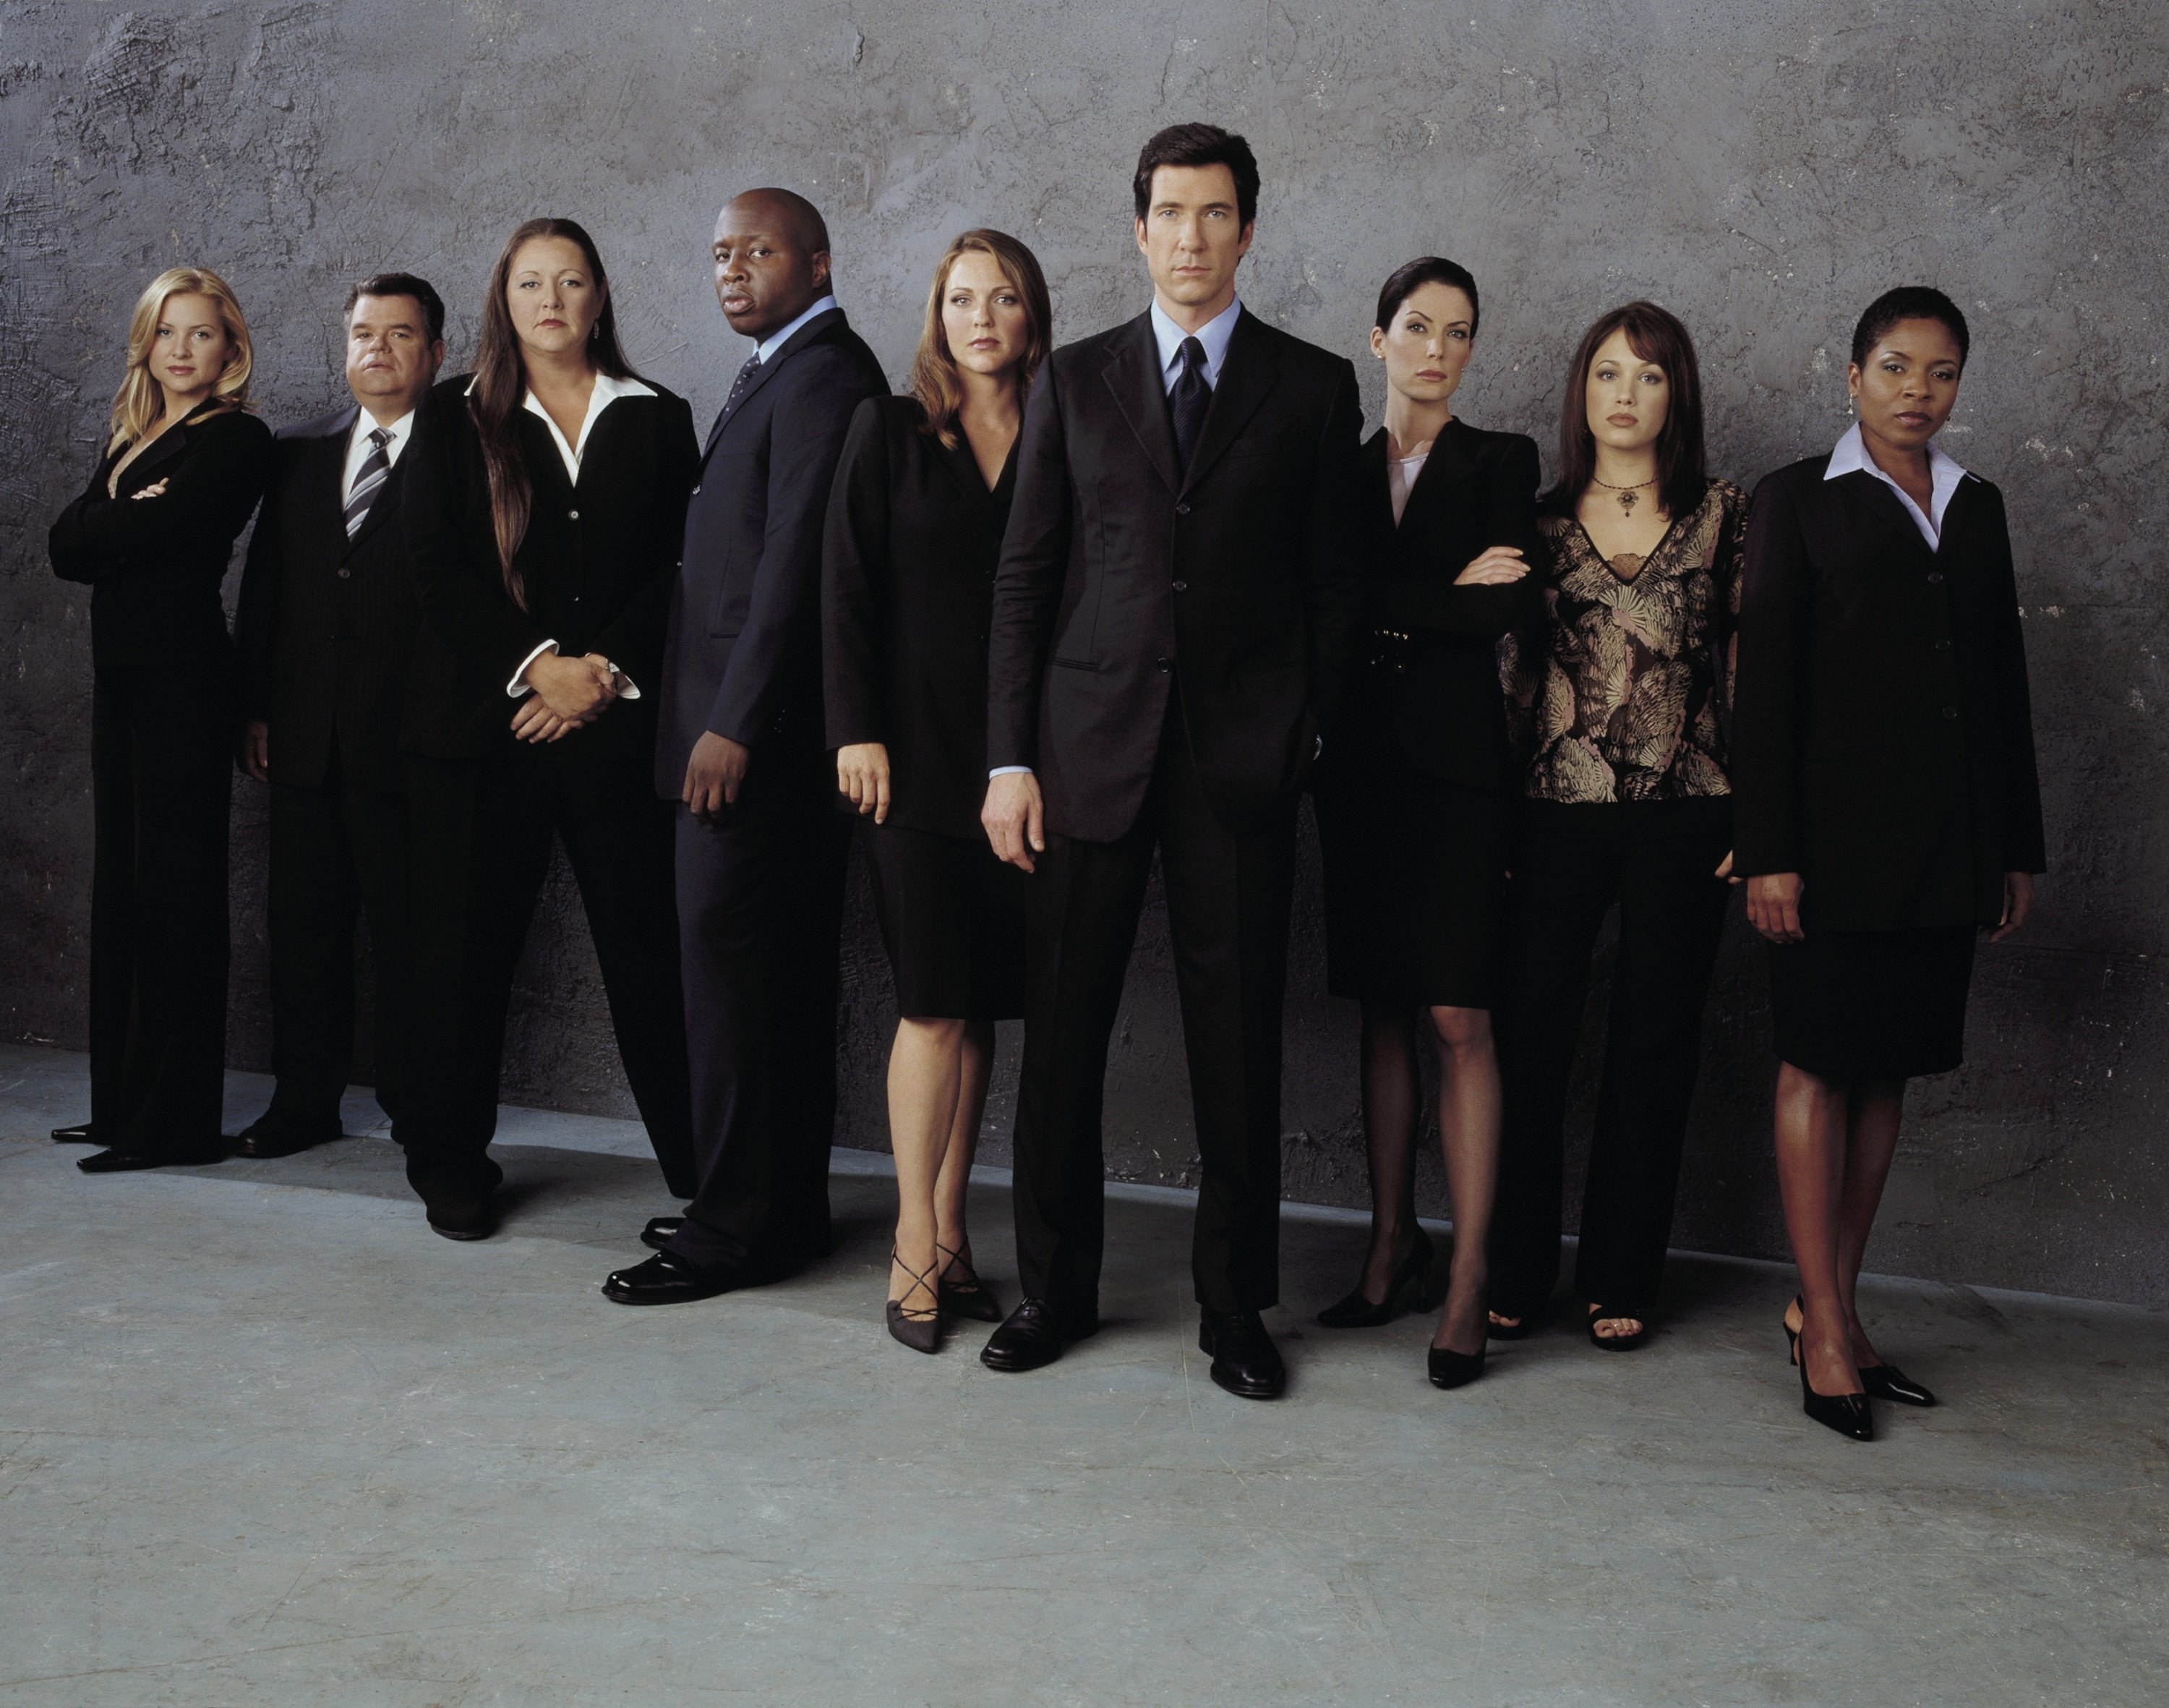 Lara Flynn Boyle, Dylan McDermott, Jessica Capshaw, LisaGay Hamilton, Steve Harris, Camryn Manheim, Marla Sokoloff, Kelli Williams, and Michael Badalucco in The Practice (1997)